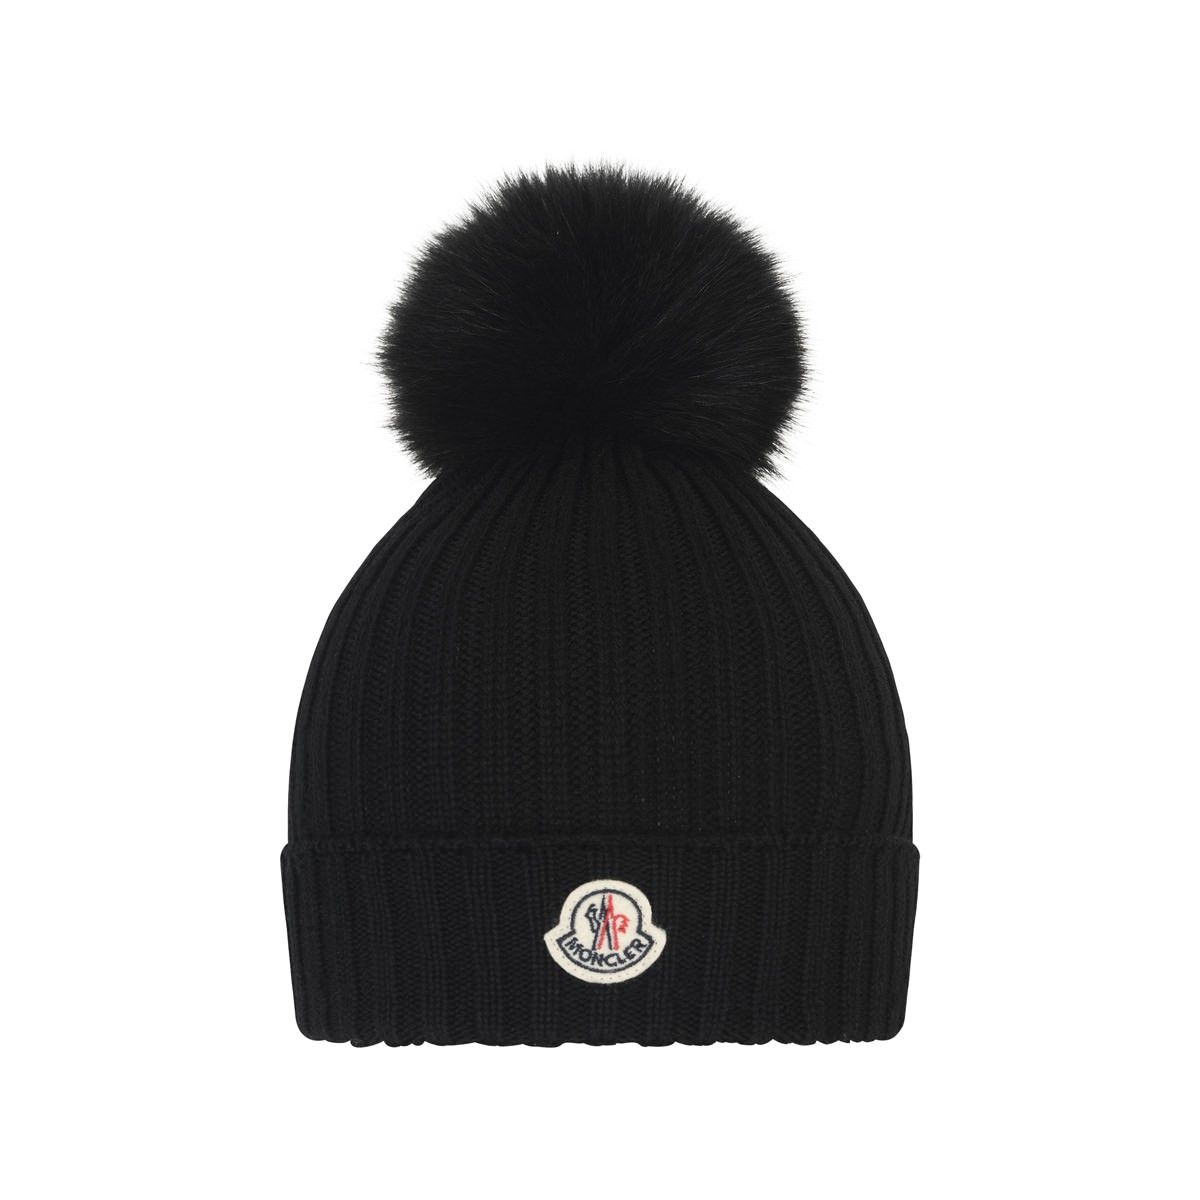 8a0c4980fa9cd Moncler Black Wool Knitted Hat With Fur Pom Pom